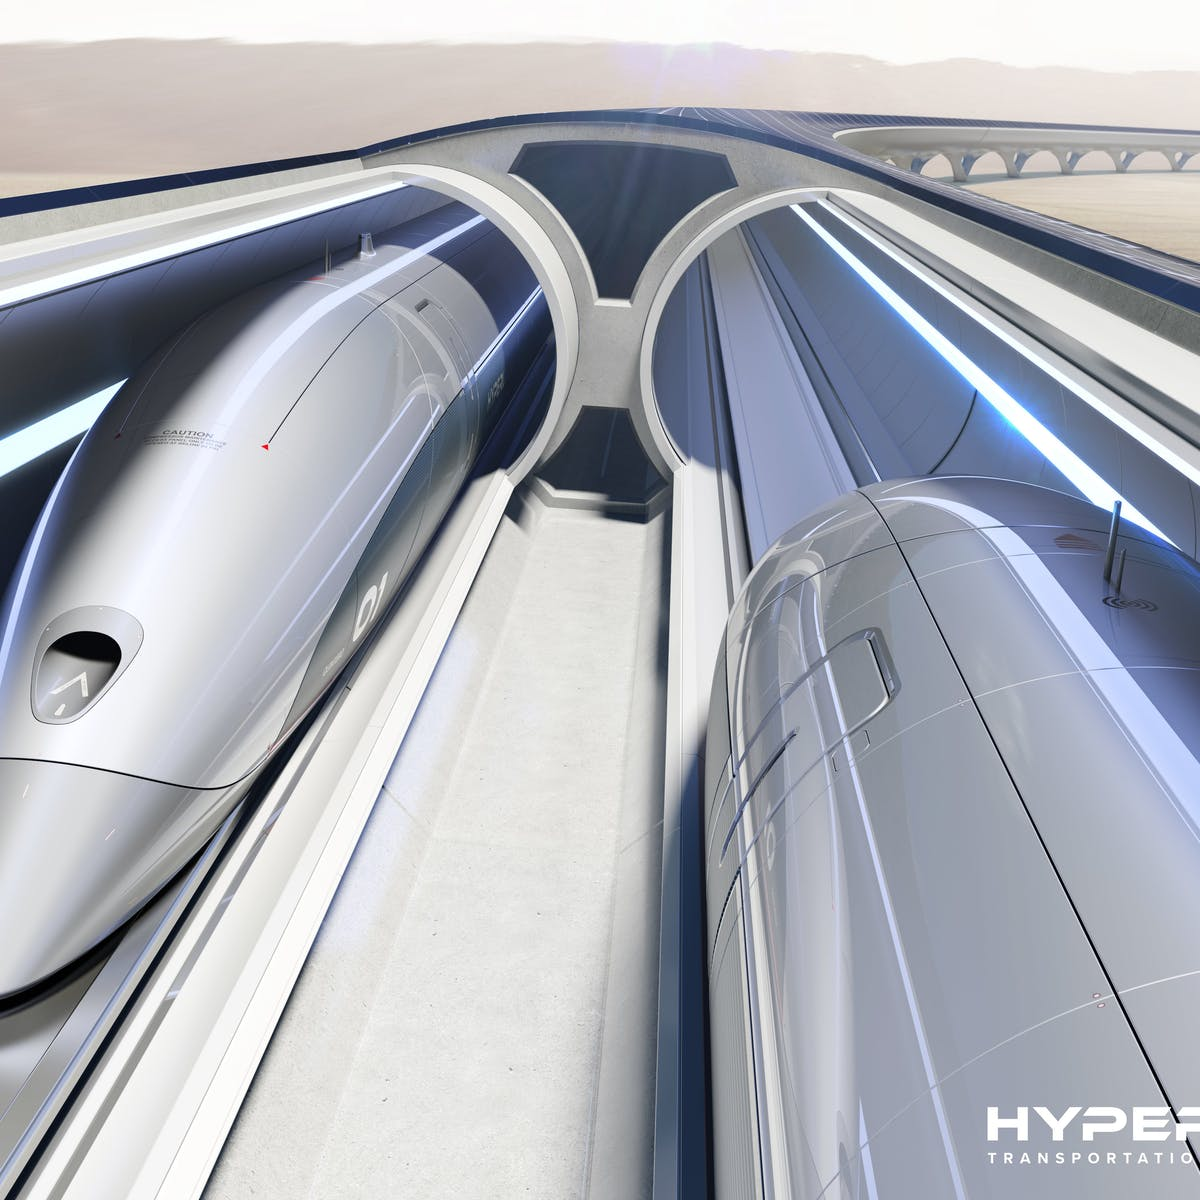 Hyperloop: Here's Why We Have Never Reached Full 700 MPH Speeds